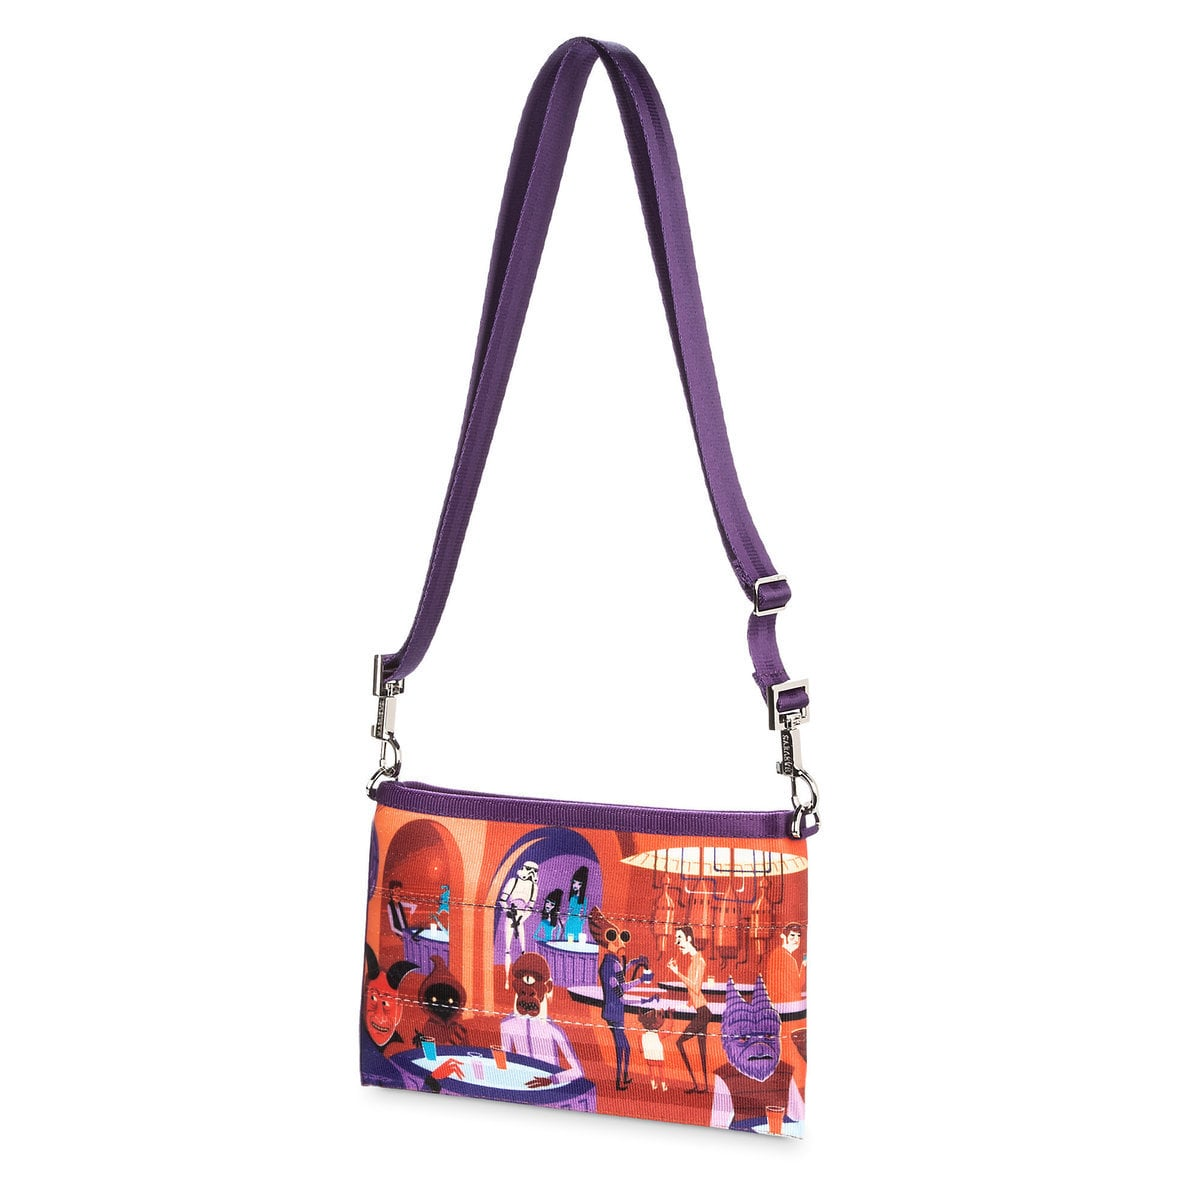 916d2ce1 Product Image of Star Wars Cantina Hip Pack by Shag for Harveys # 2